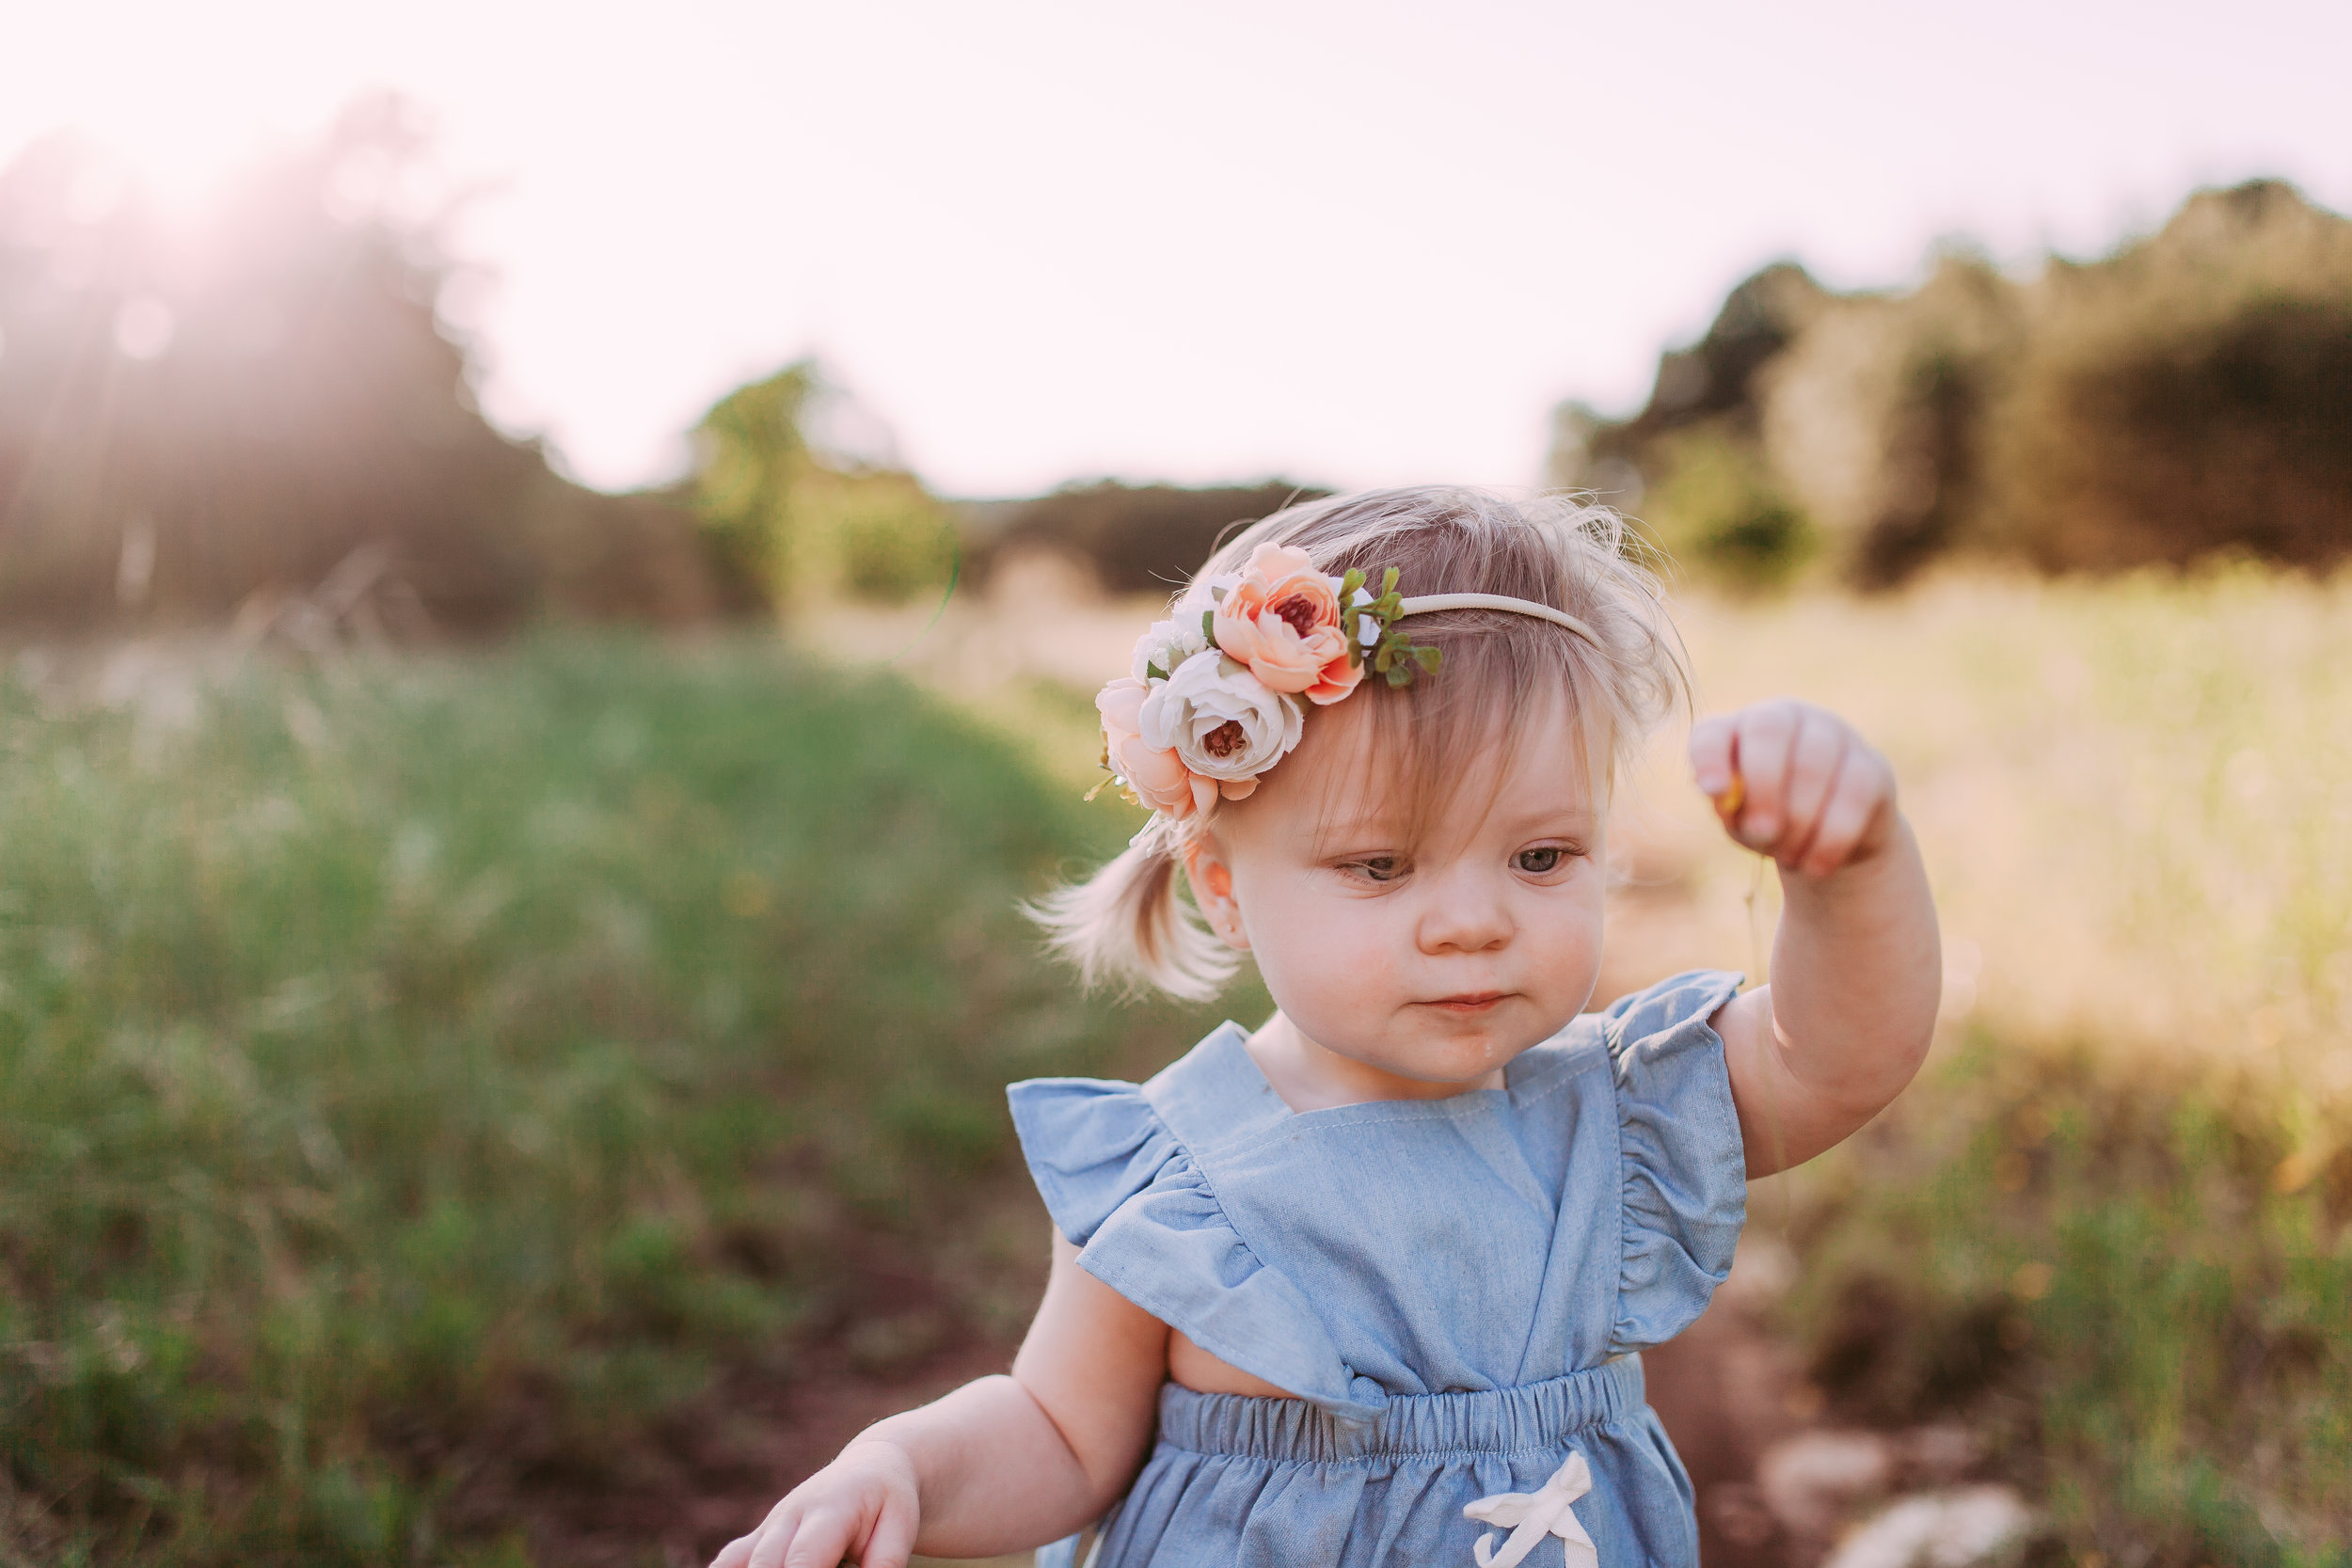 Milestone Session - A quick 30 minute session for your little one before they get any bigger! 25+ images to treasure.$275